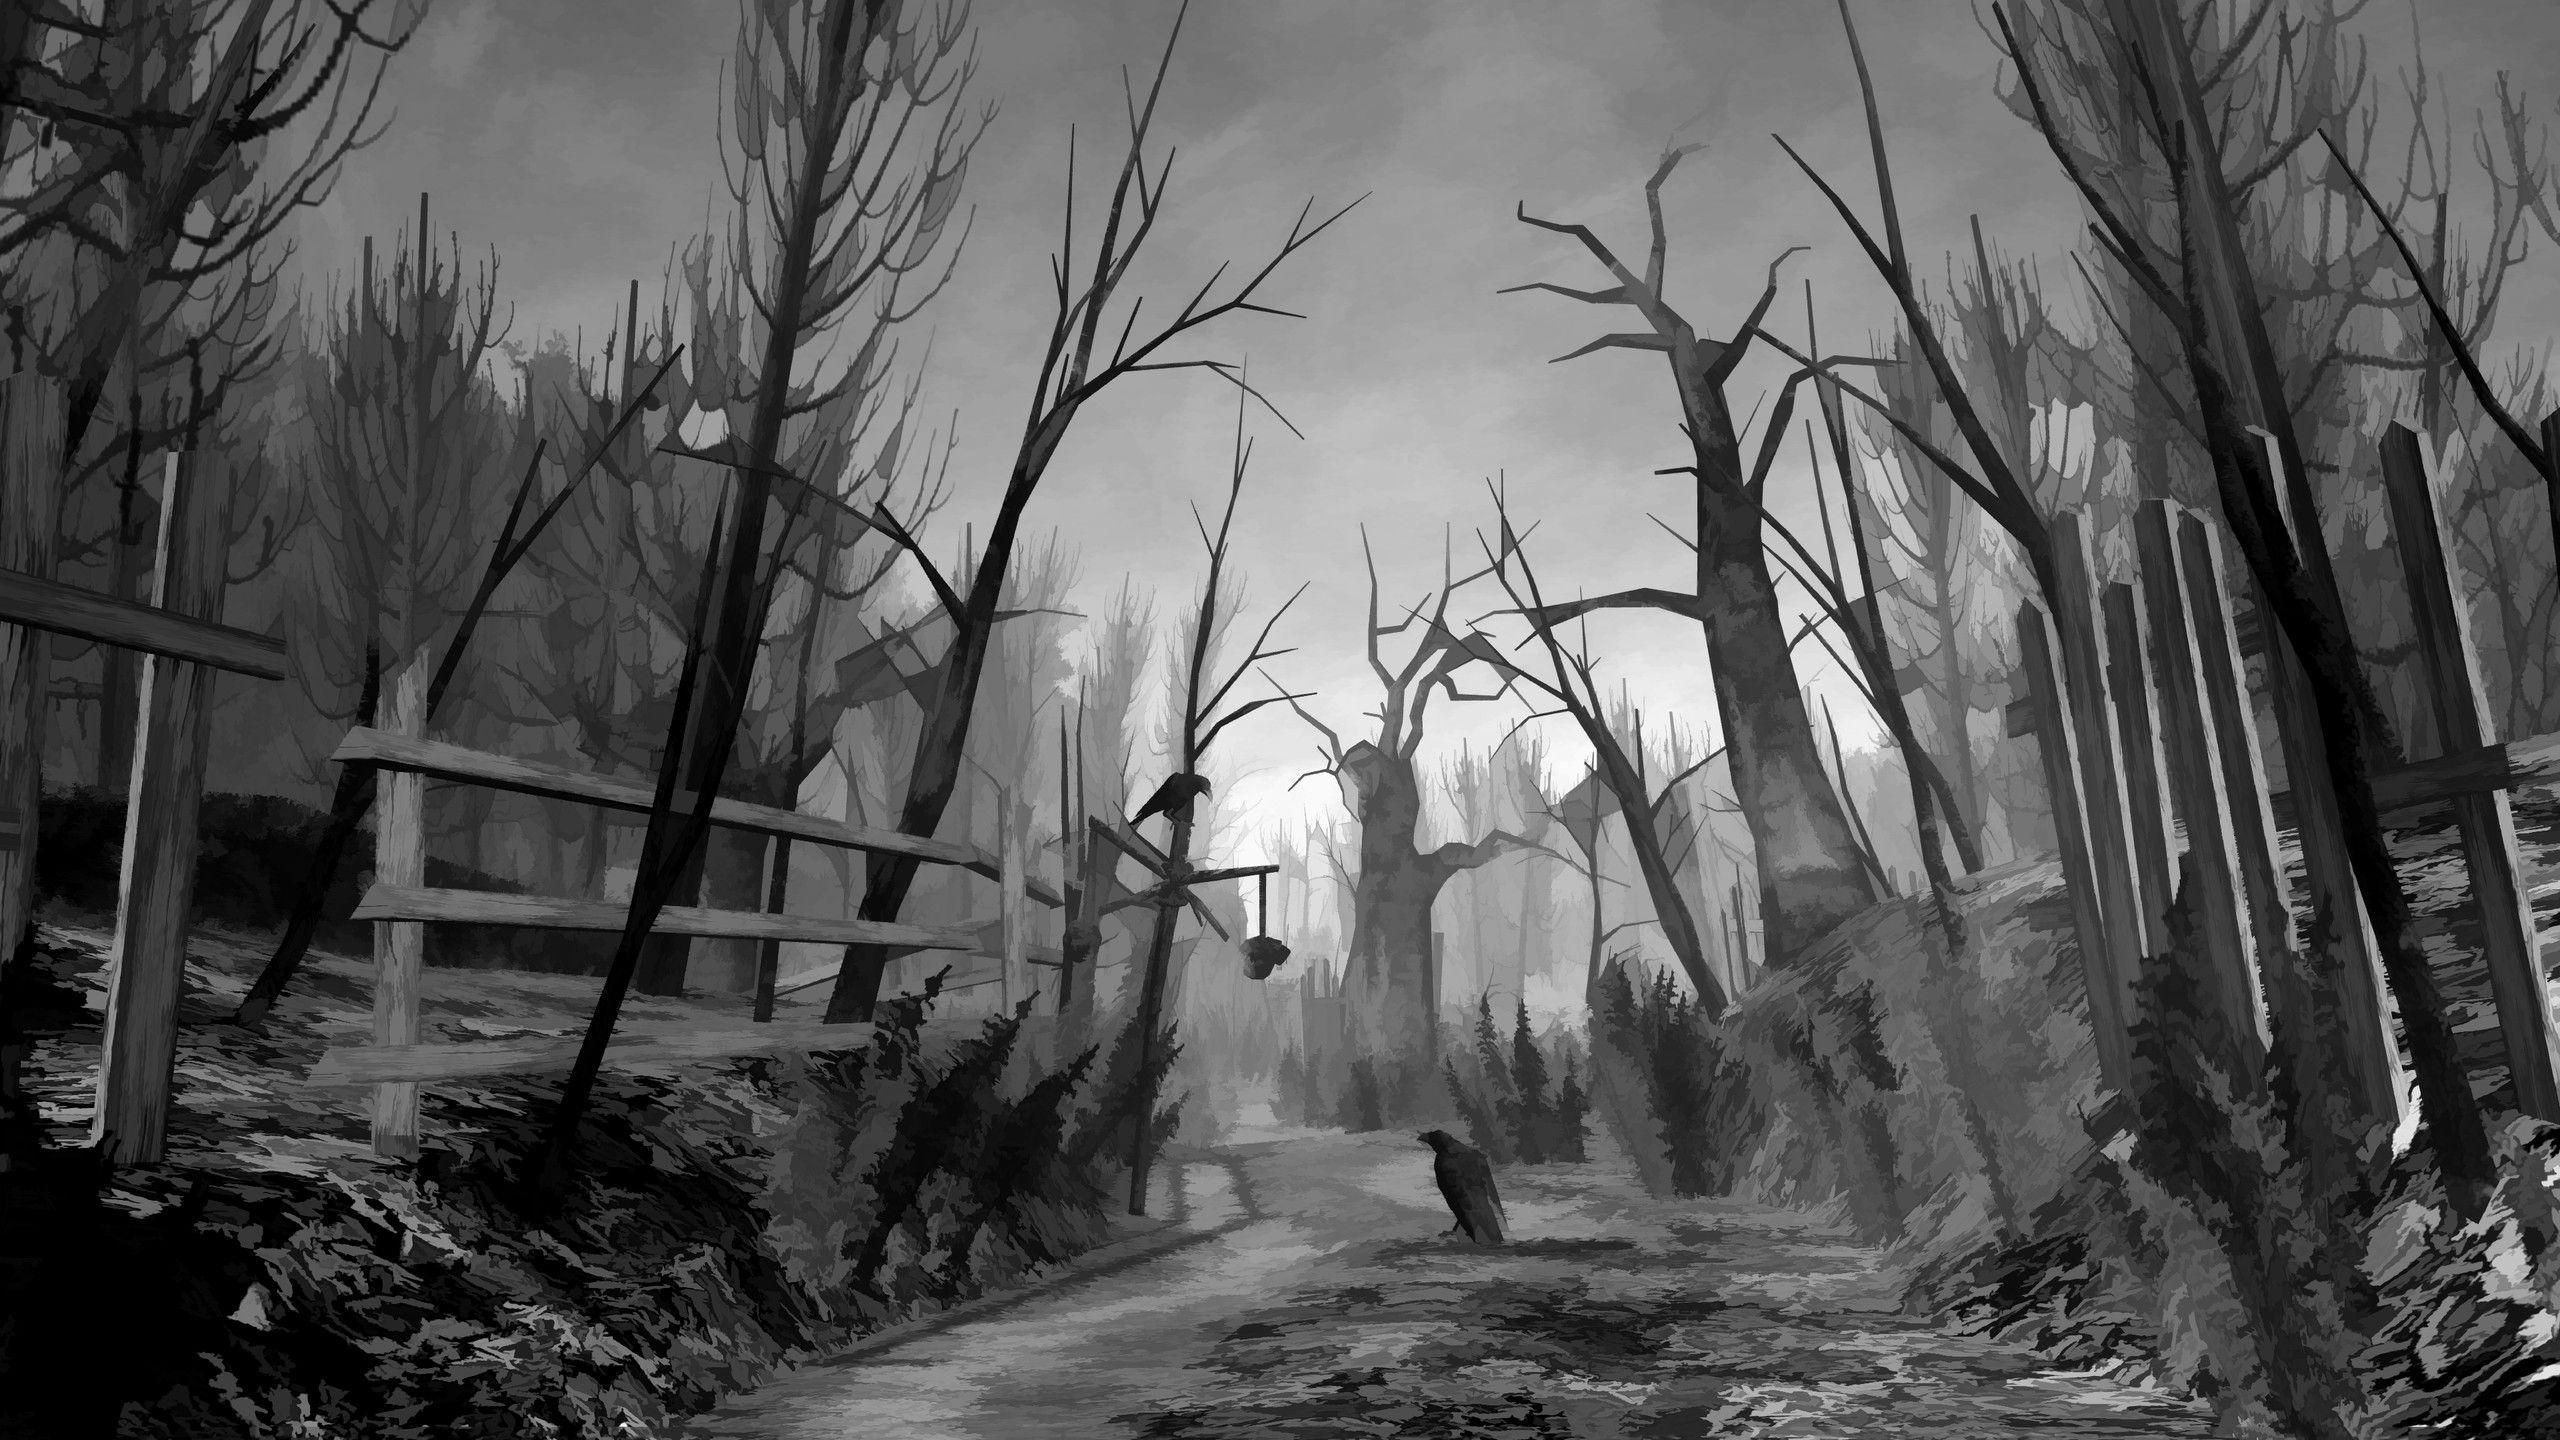 Res: 2560x1440, Scary Backgrounds Wallpaper 2560×1440 Creepy Forest Backgrounds (35  Wallpapers) | Adorable Wallpapers